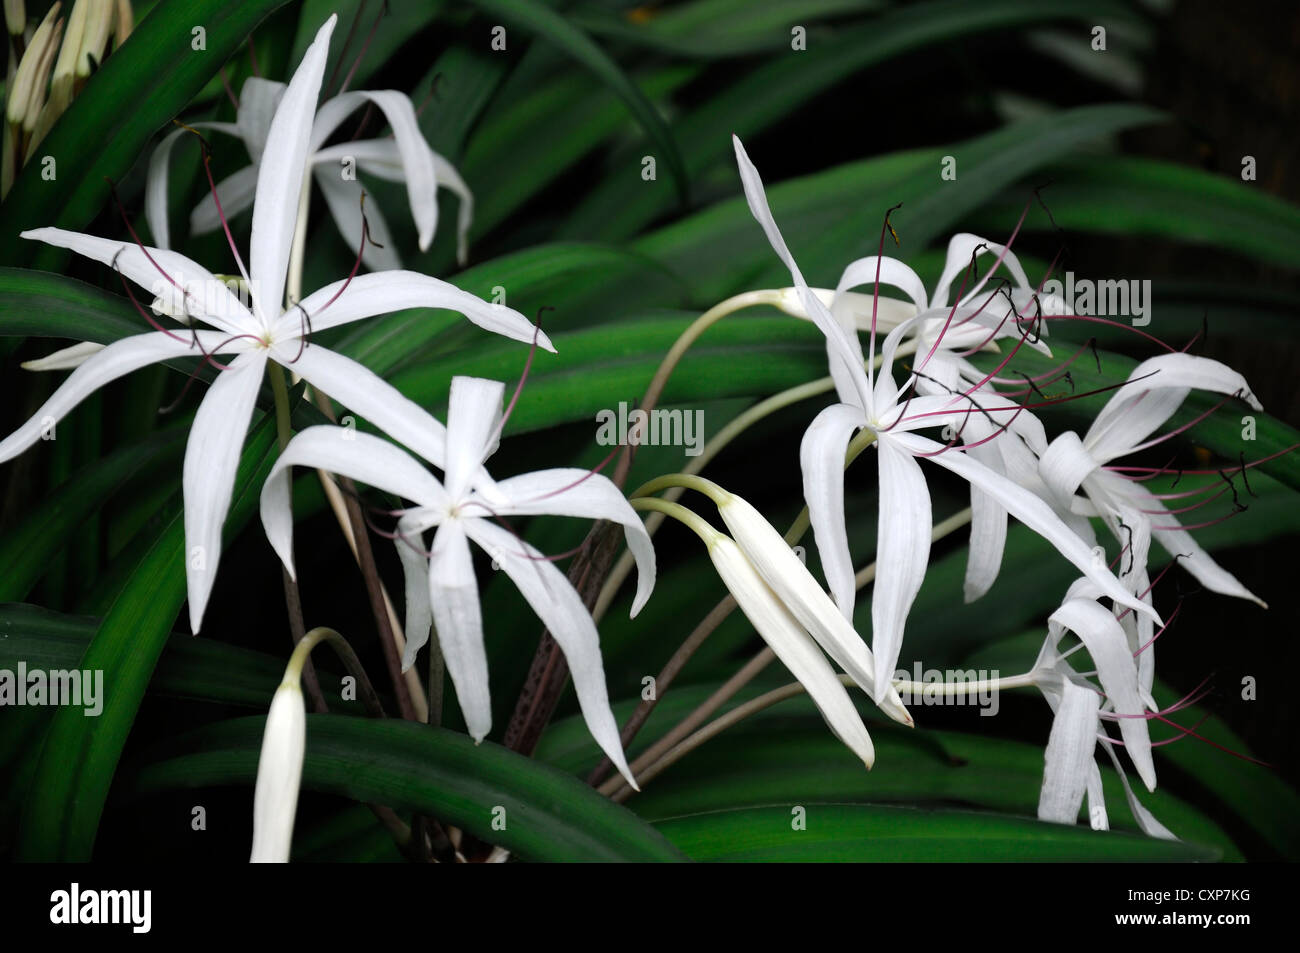 Starry crinum purpurascens white flowers flower amaryllidaceae stock starry crinum purpurascens white flowers flower amaryllidaceae tropical plant swamp lily mightylinksfo